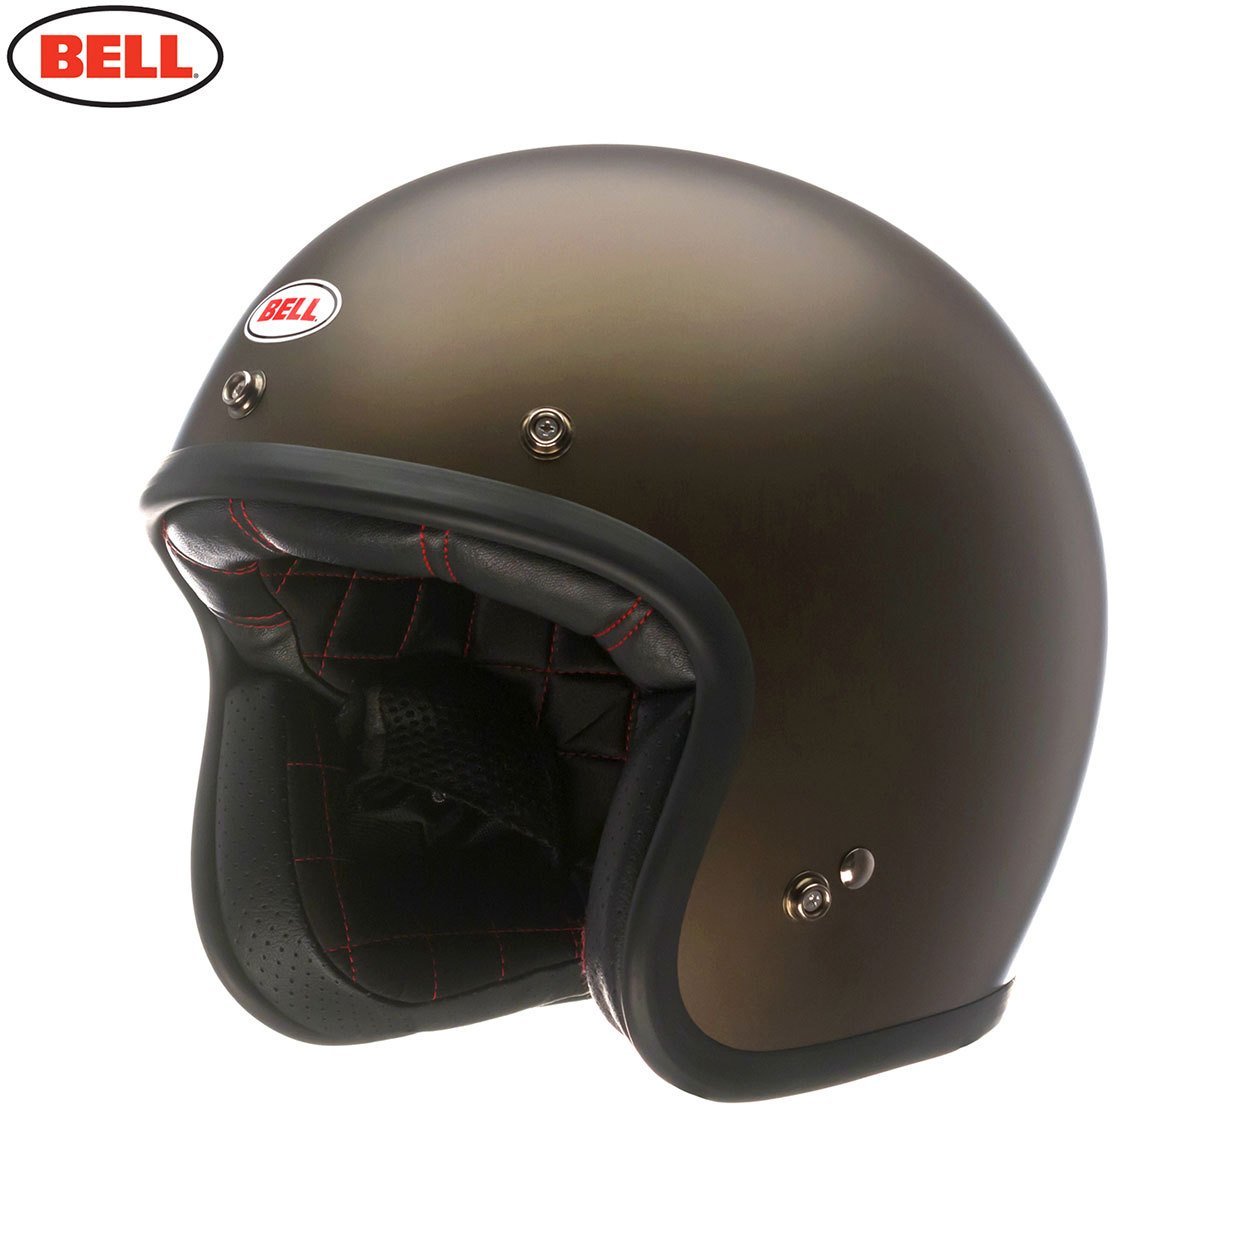 Bell Helmets Street 2015 Custom 500 Casco Adulto, color Marrón metalico mate, talla XL: Amazon.es: Coche y moto